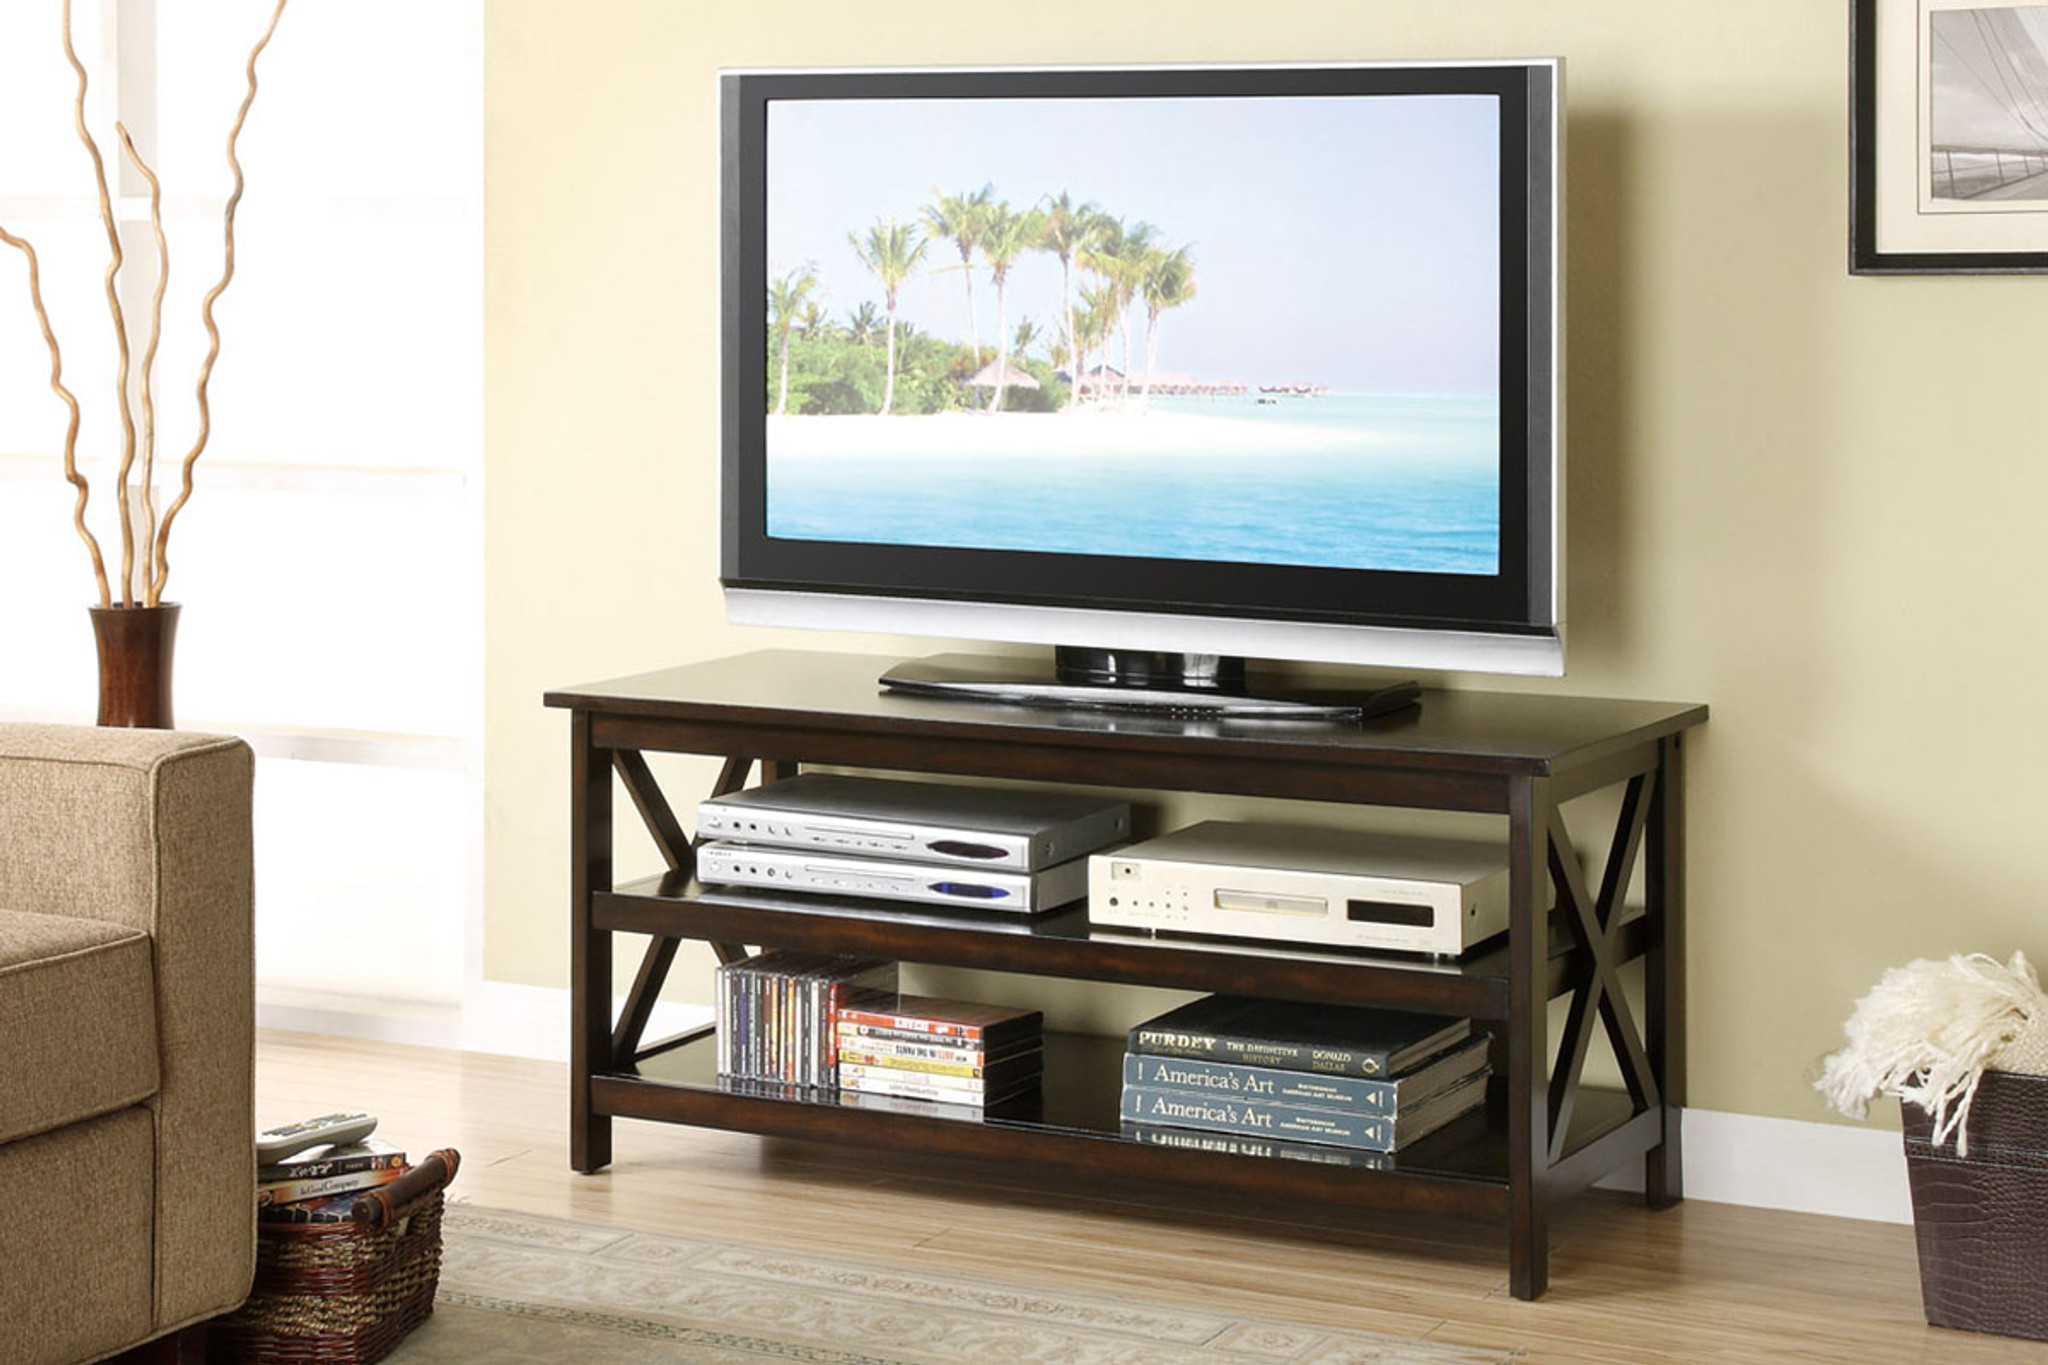 Kassa Mall Home Furniture F4513 Espresso Tv Stand With Shelves